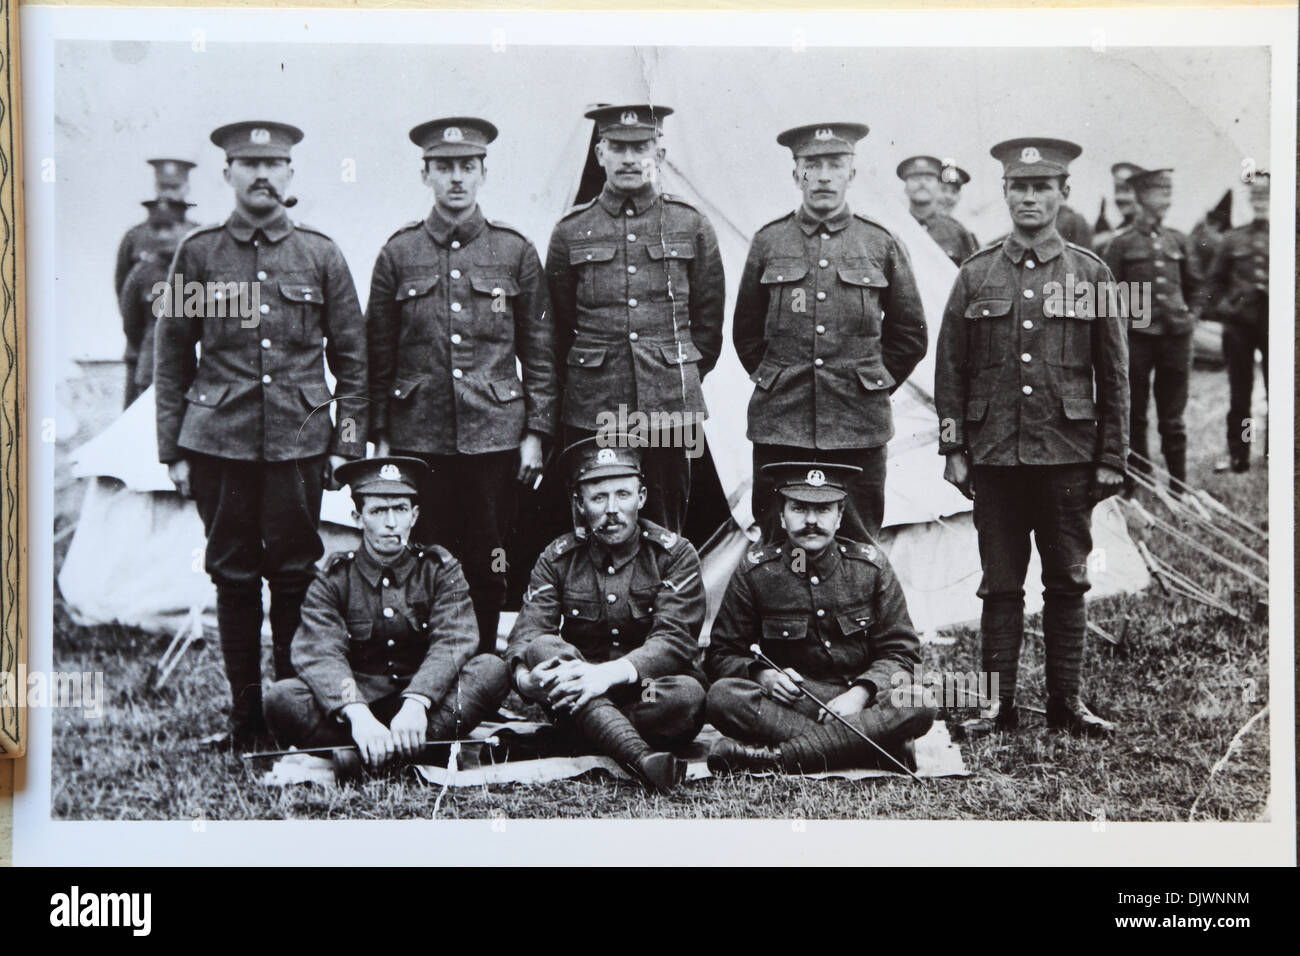 British First World War soldiers in encampment, 1st World War, 1st WW, Great War 1914-1918, history, archive archival historical imagery, WW1, England UK British Army soldier camp World War 1 - Stock Image